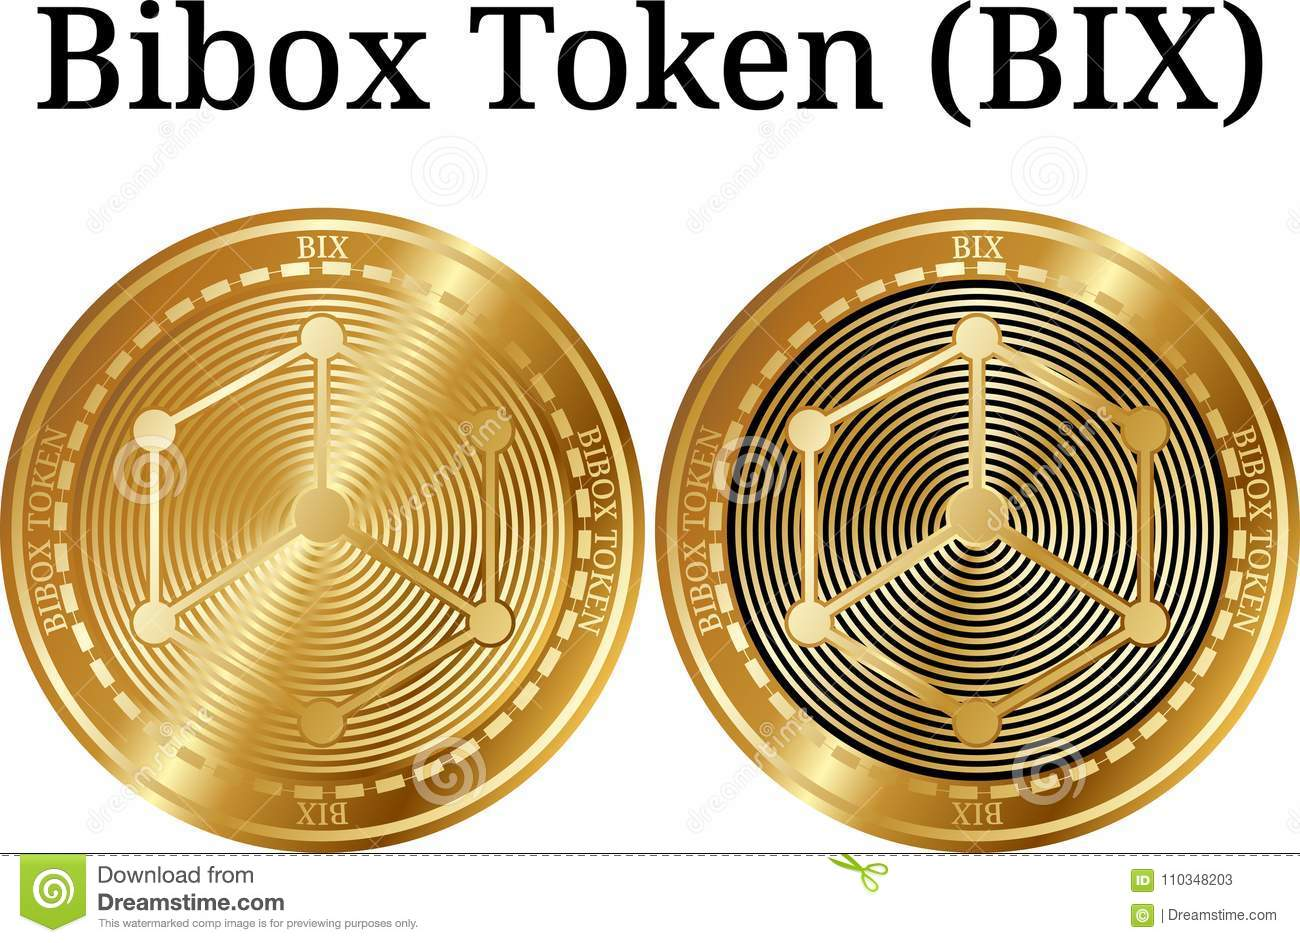 Set Of Physical Golden Coin Bibox Token BIX Stock Vector